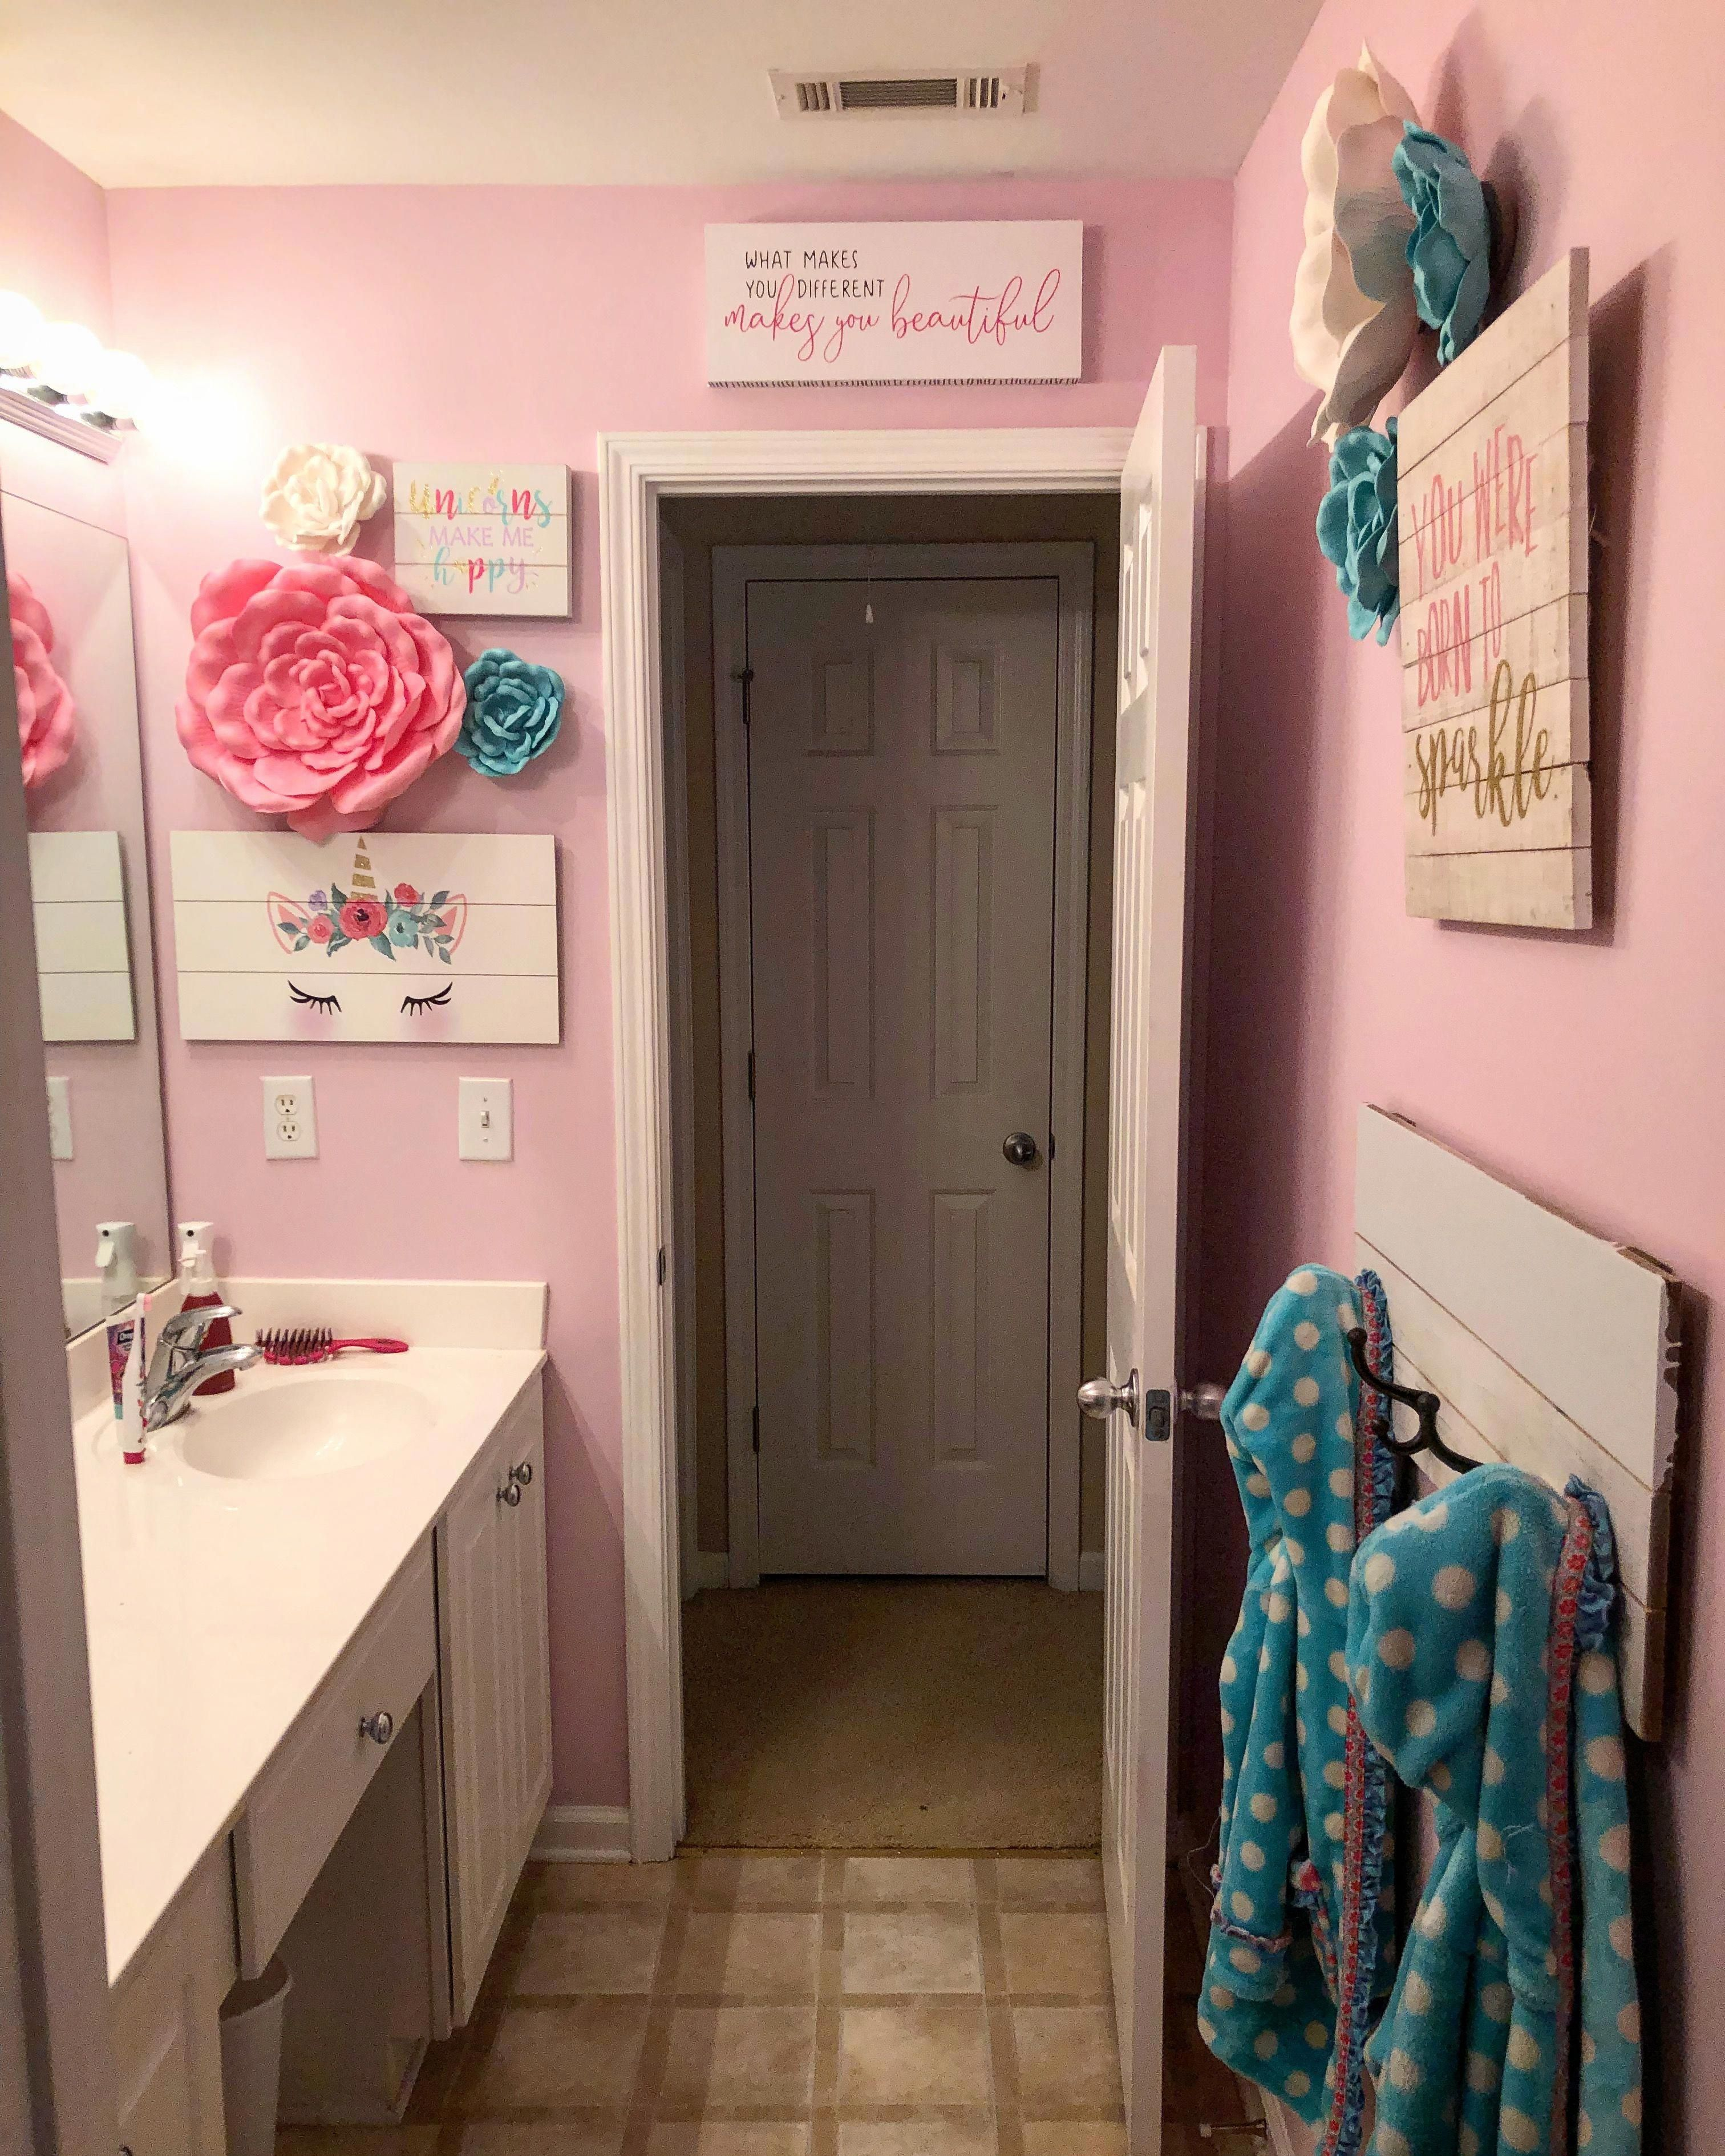 Store Bath Vanities By Style, Bathrooms are typically a small